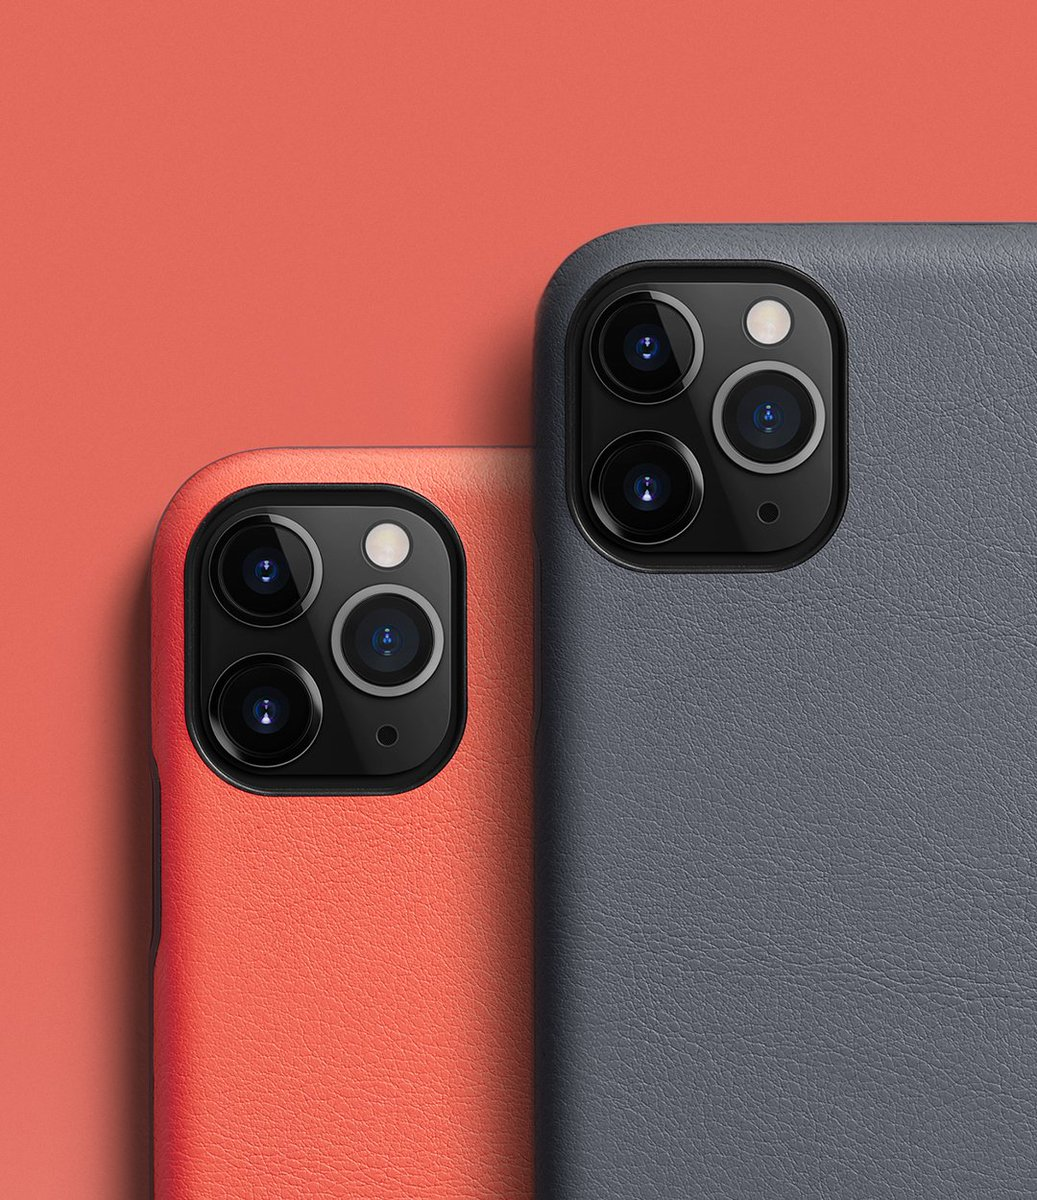 iPhone 11 cases are here! Lights, camera… more cameras! The photo-riffic new iPhone 11s have dropped, and so have our new cases. The classic Phone Case and versatile Phone Case - 3 Card are available for all three new iPhone models. . Shop them here: https://t.co/gDxhPYxB1P https://t.co/4RVzhbTPoH